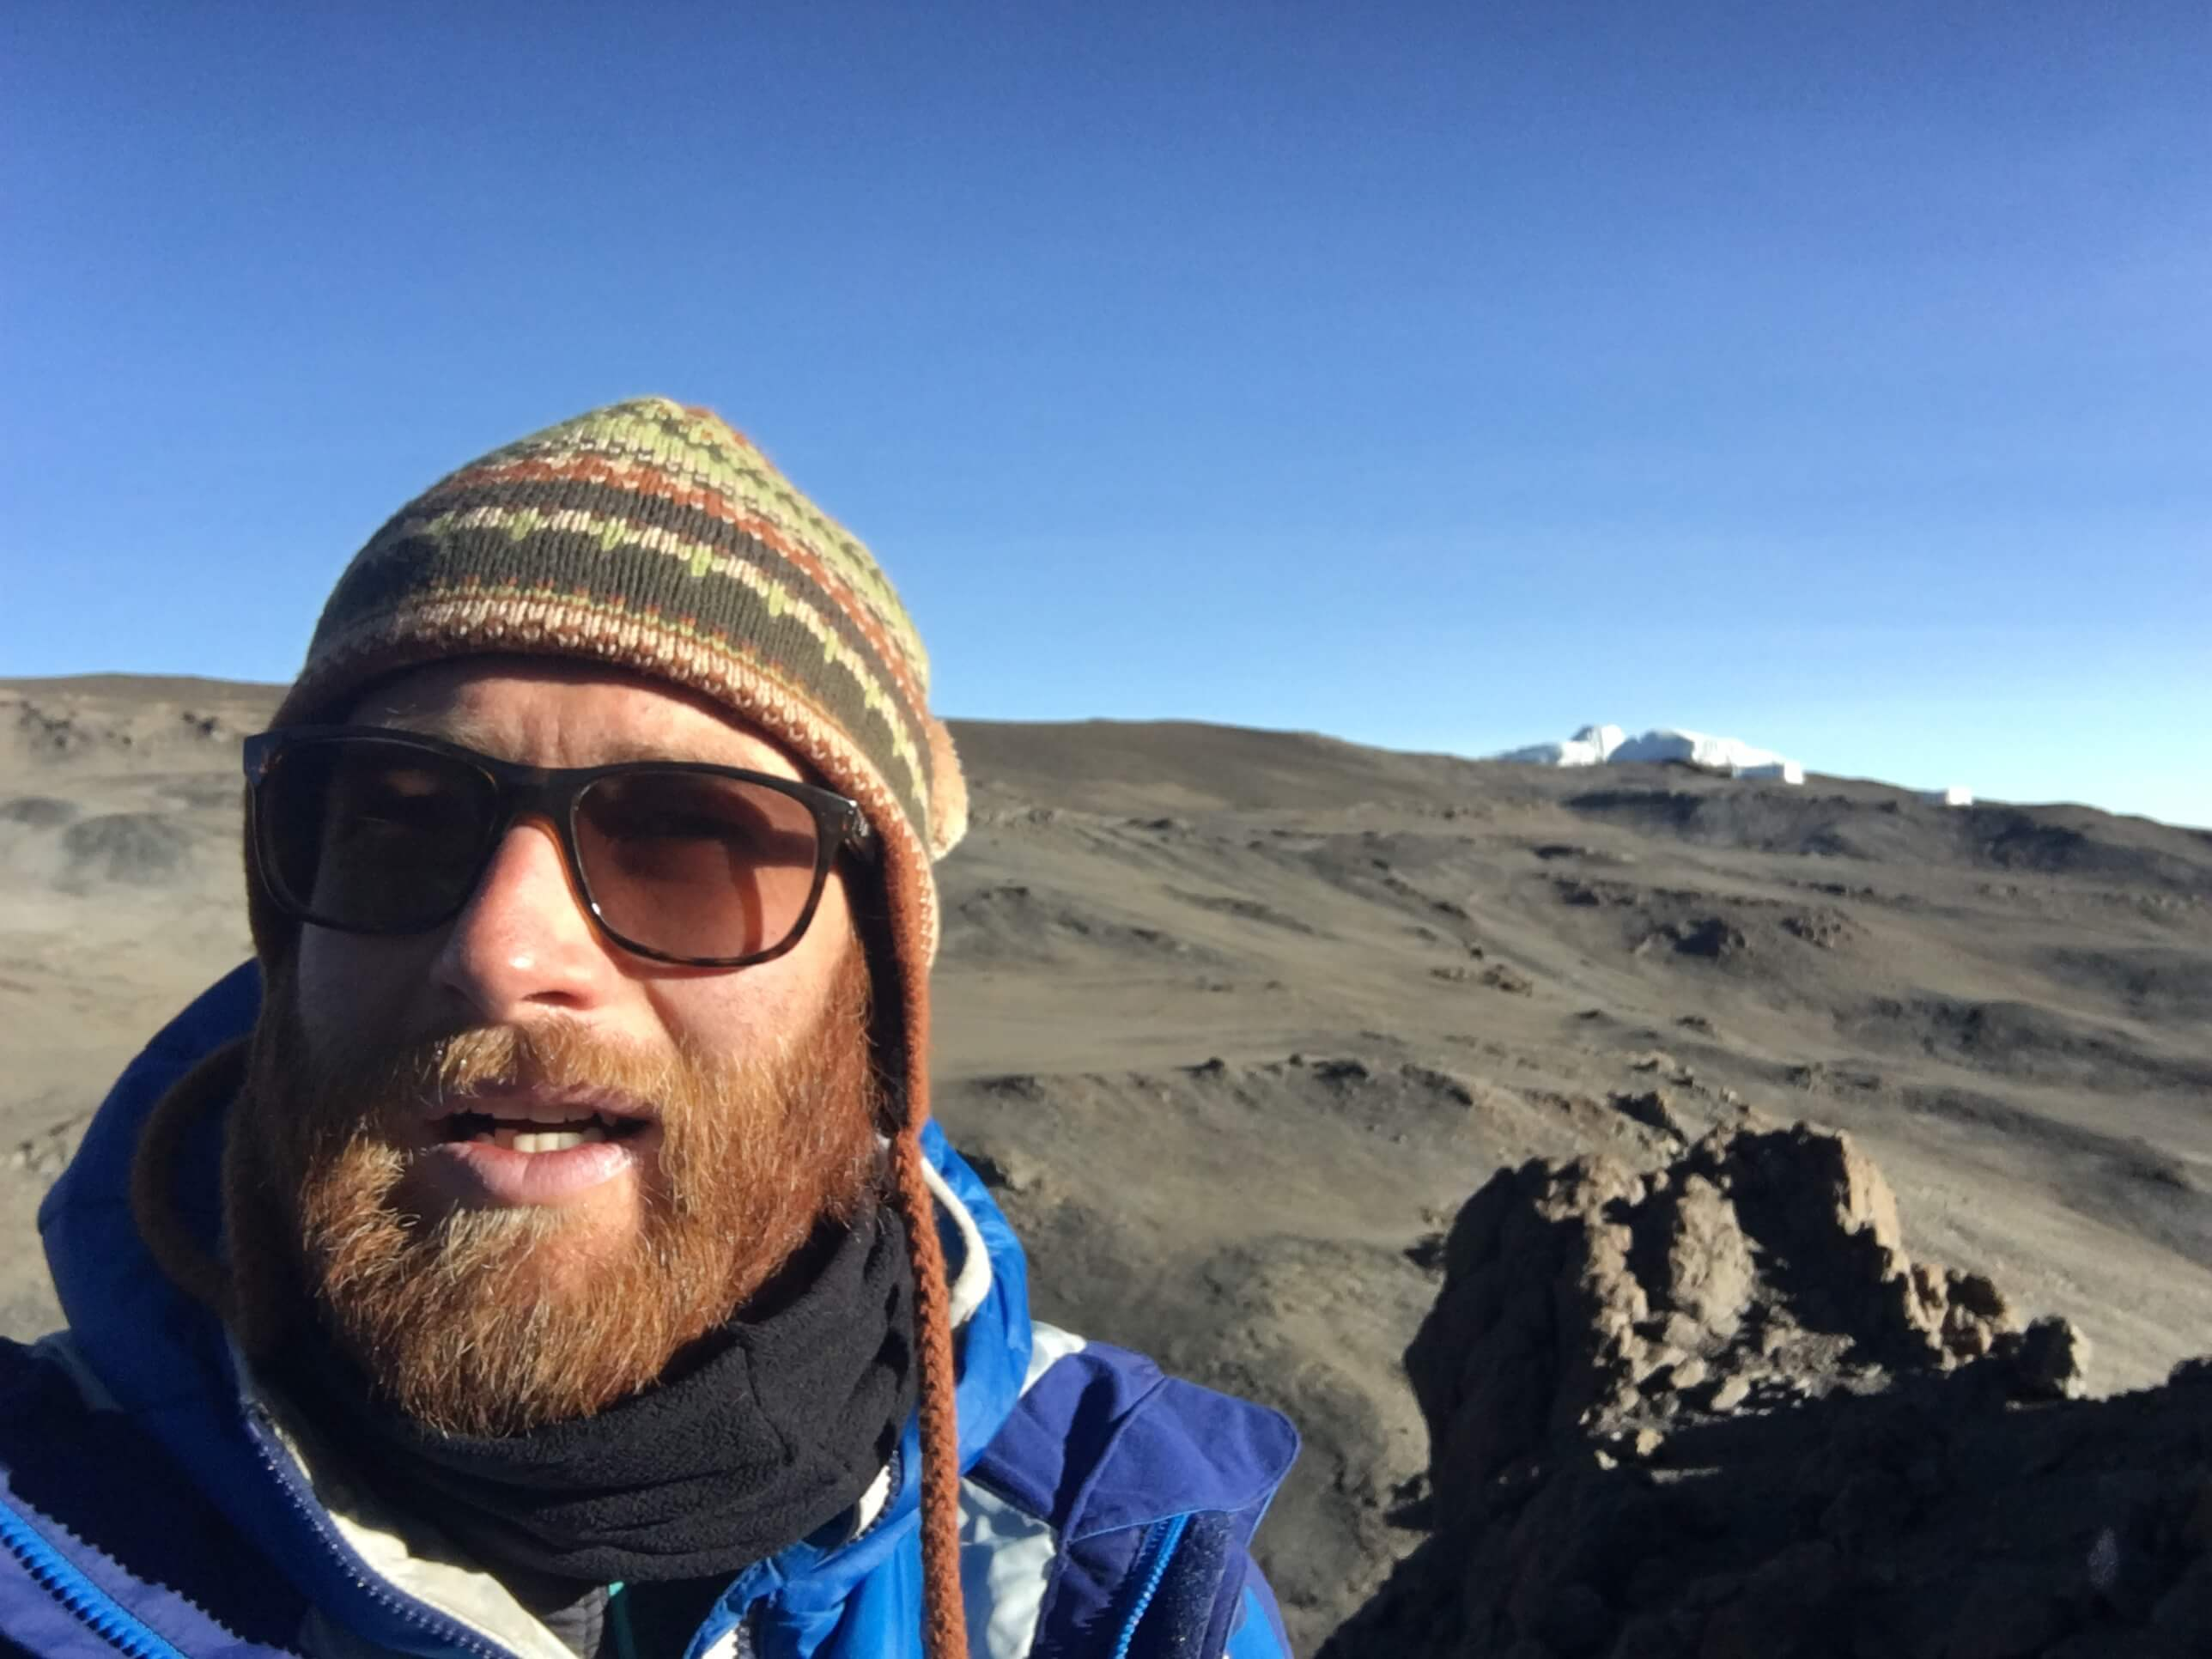 Selfie of Joel Nurser on Mount Kilimanjaro glacier raising money for Marie Curie charity